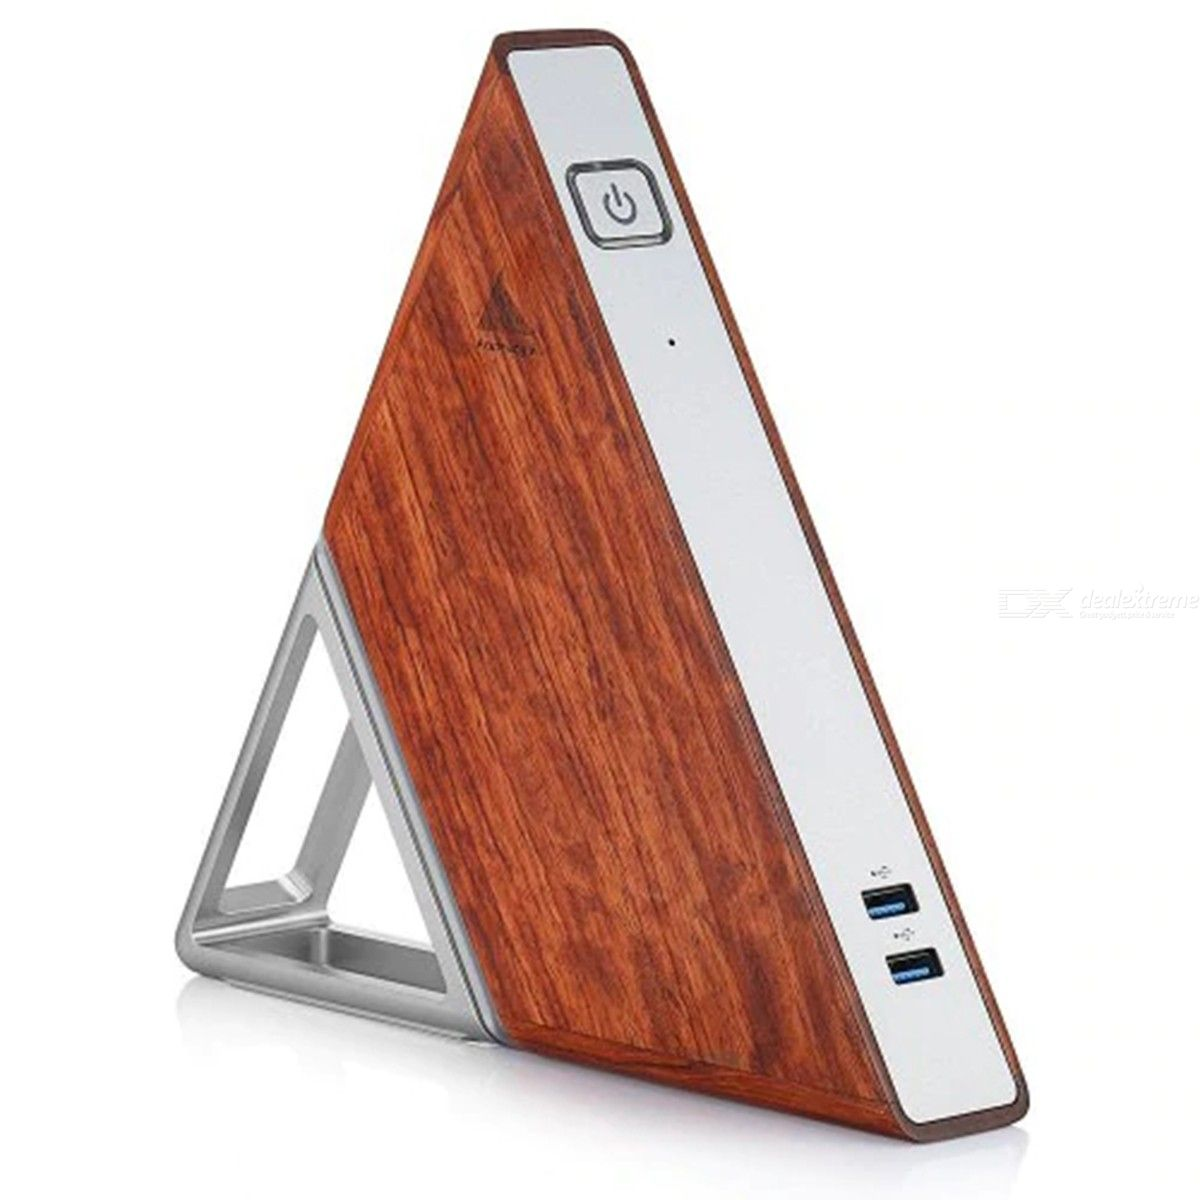 Acute Angle AA - B4 Mini PC - Multi-A 8GB RAM+64GB EMMC 128GB SSD Dual Band WiFi 1000Mbps 3 USB Port - US Plug